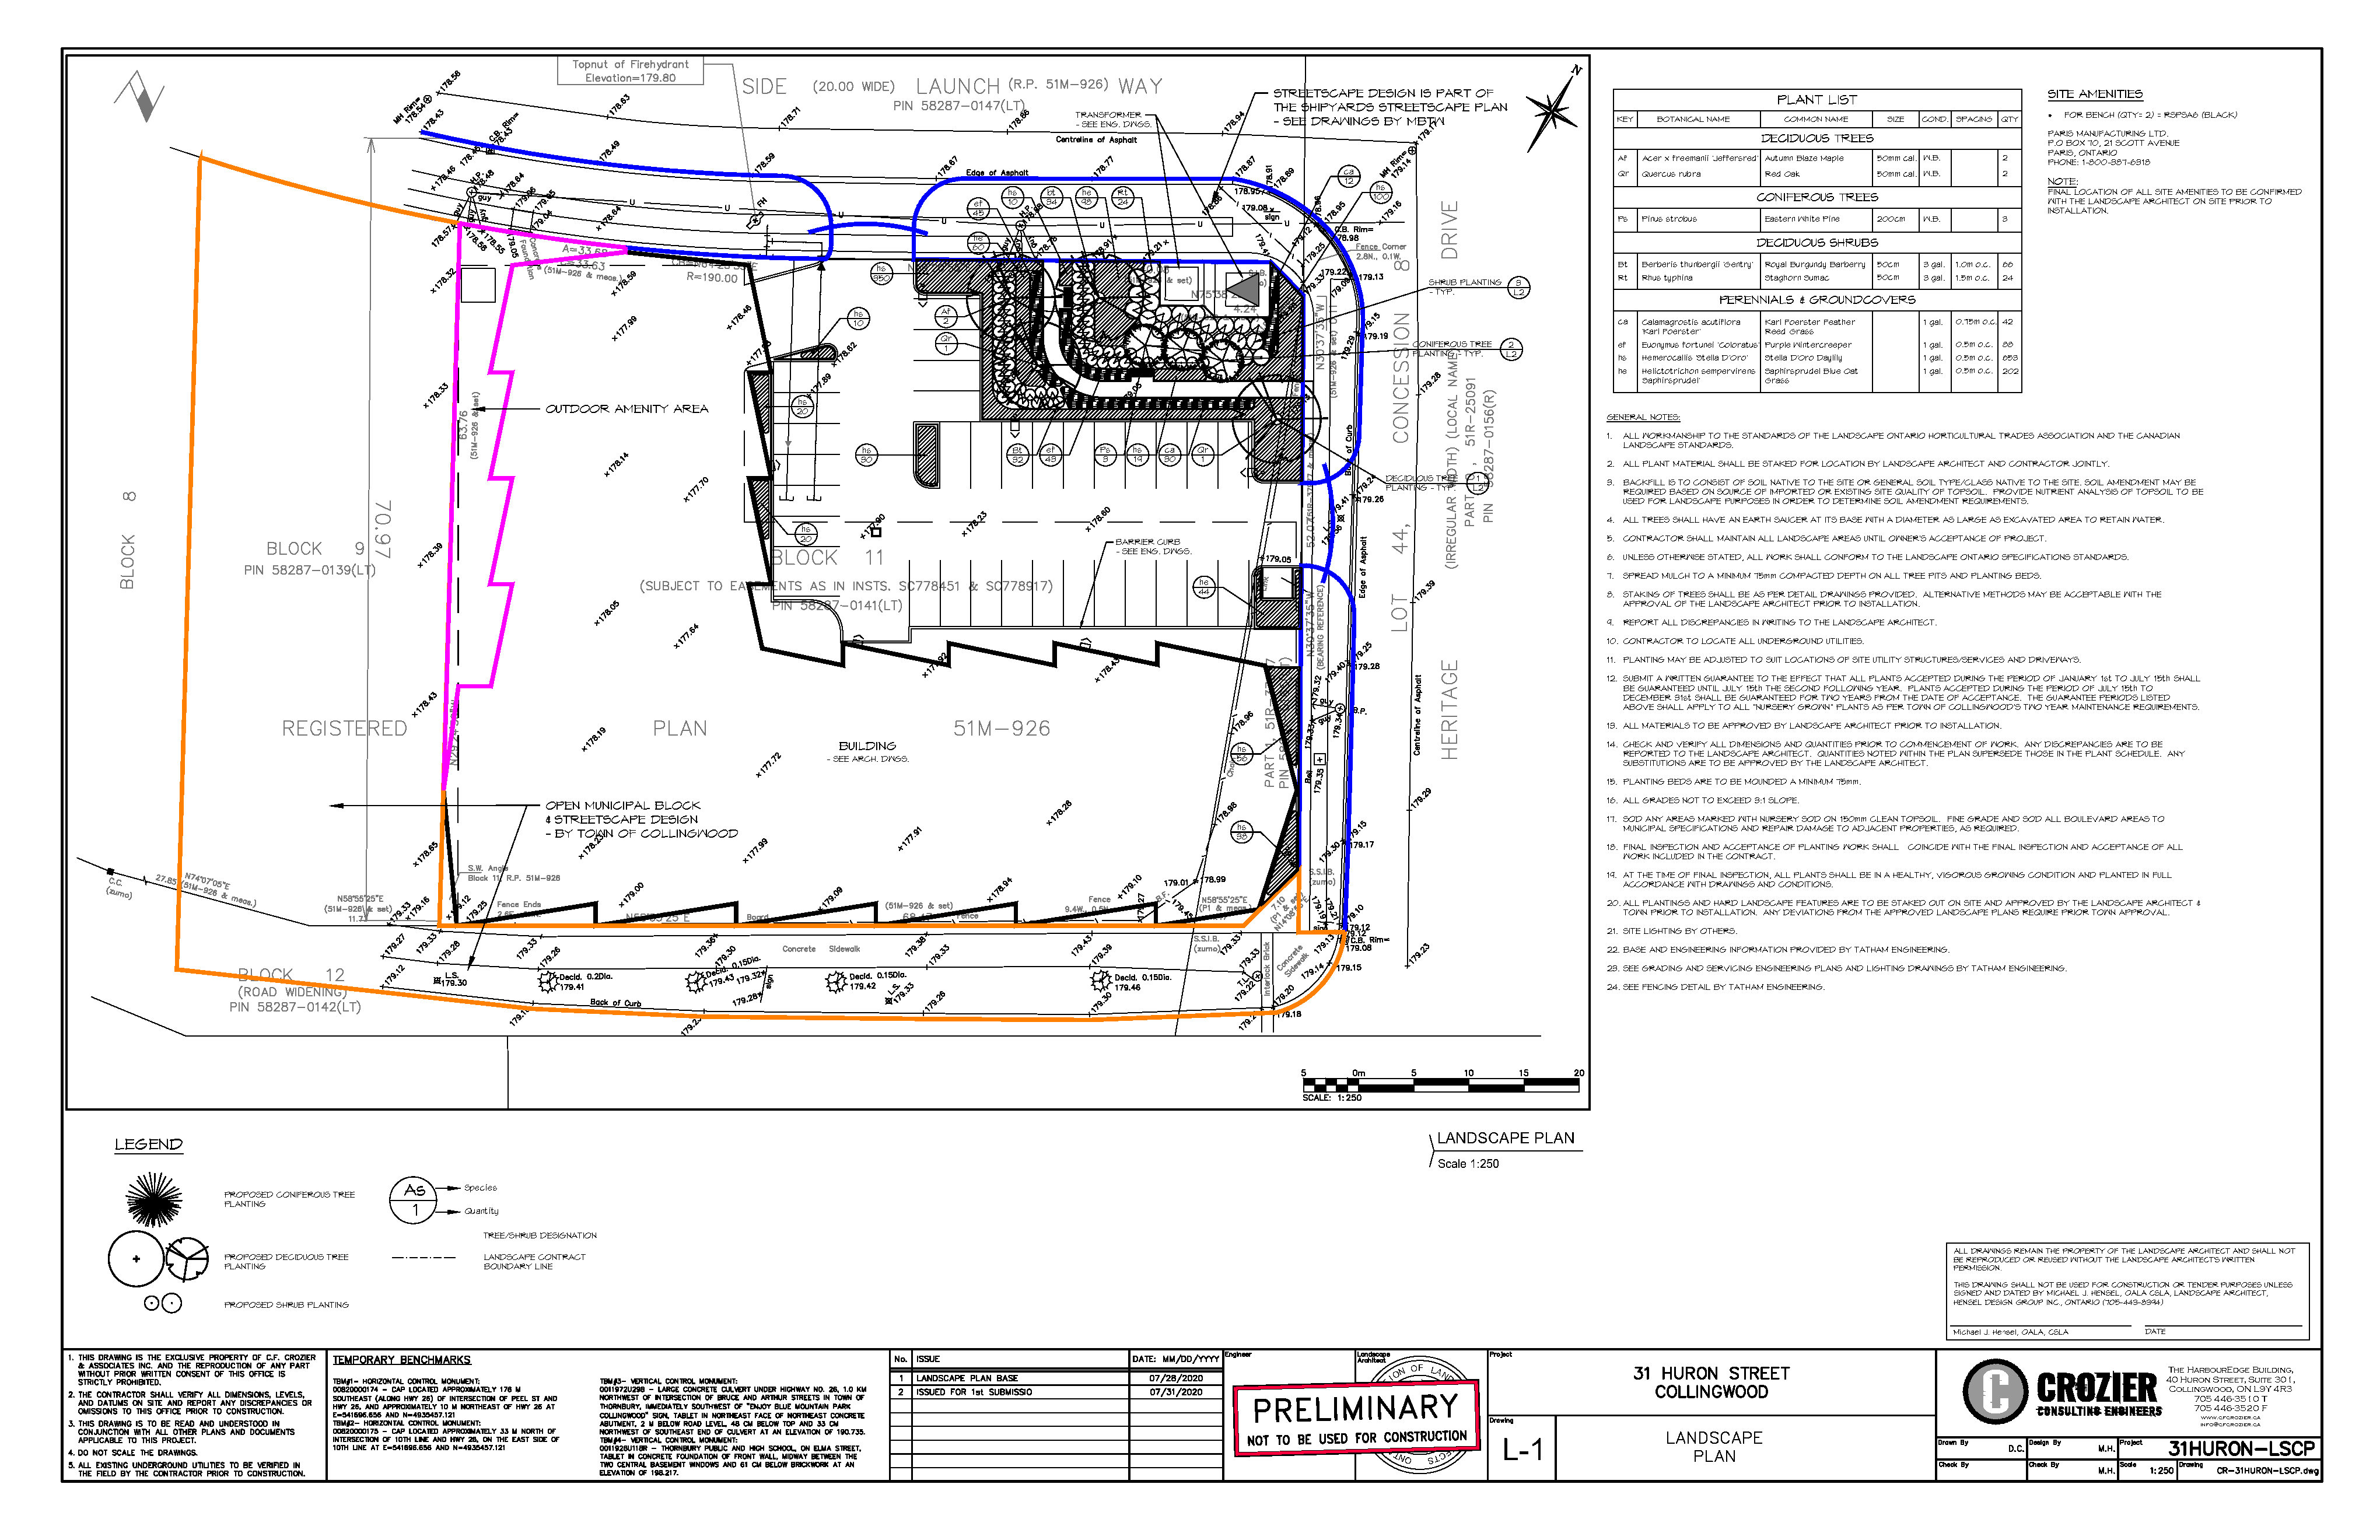 Landscaping Plan for 31 Huron St., Collingwood, ON